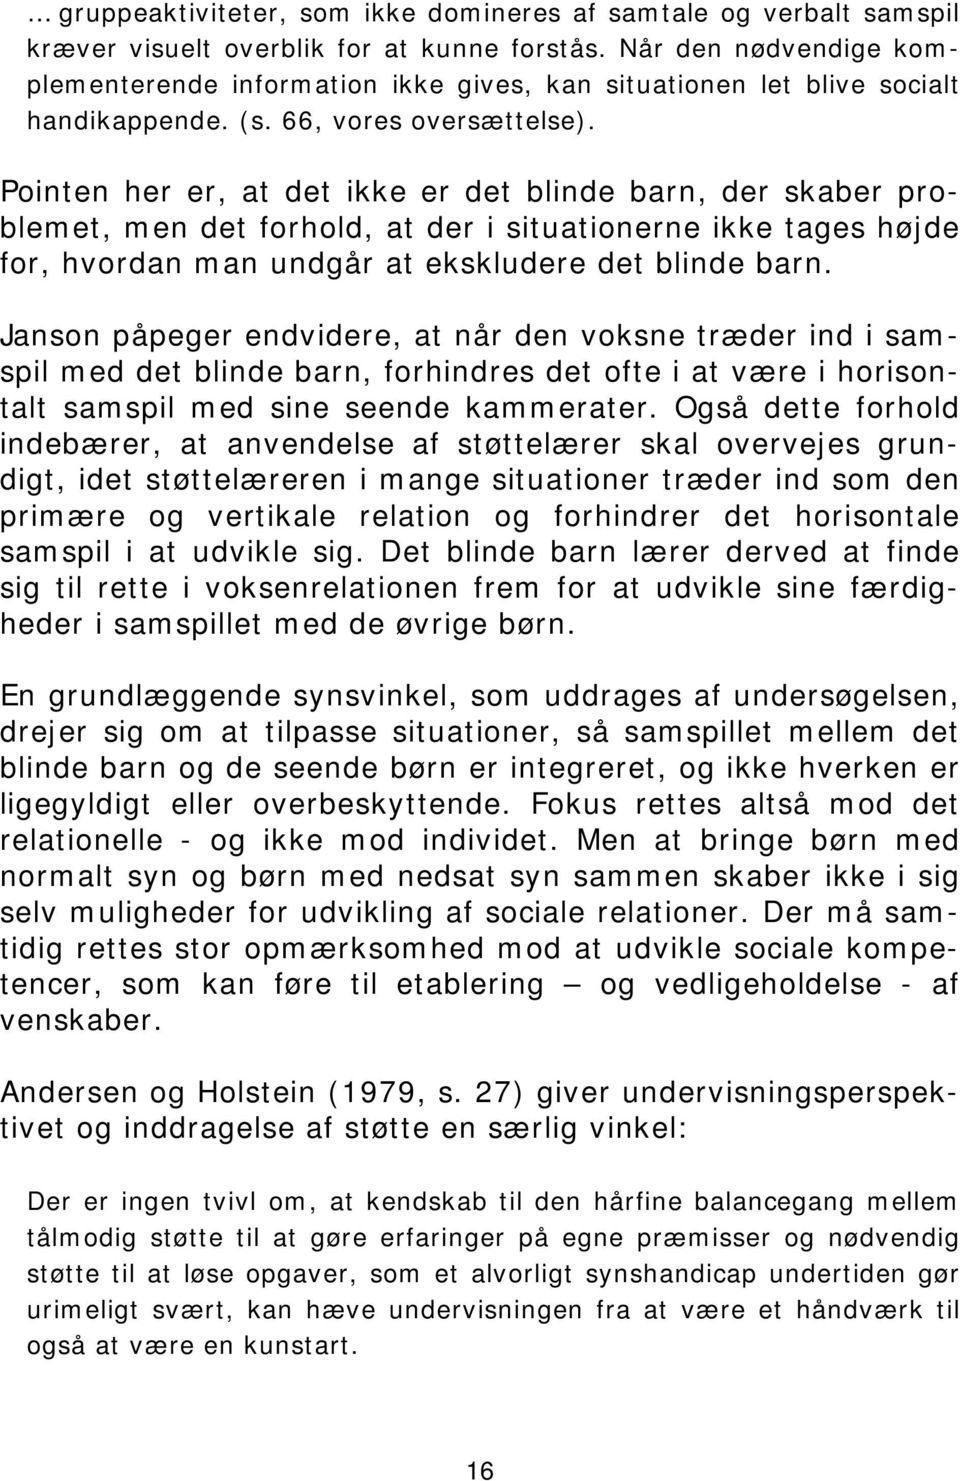 Pointen her er, at det ikke er det blinde barn, der skaber problemet, men det forhold, at der i situationerne ikke tages højde for, hvordan man undgår at ekskludere det blinde barn.